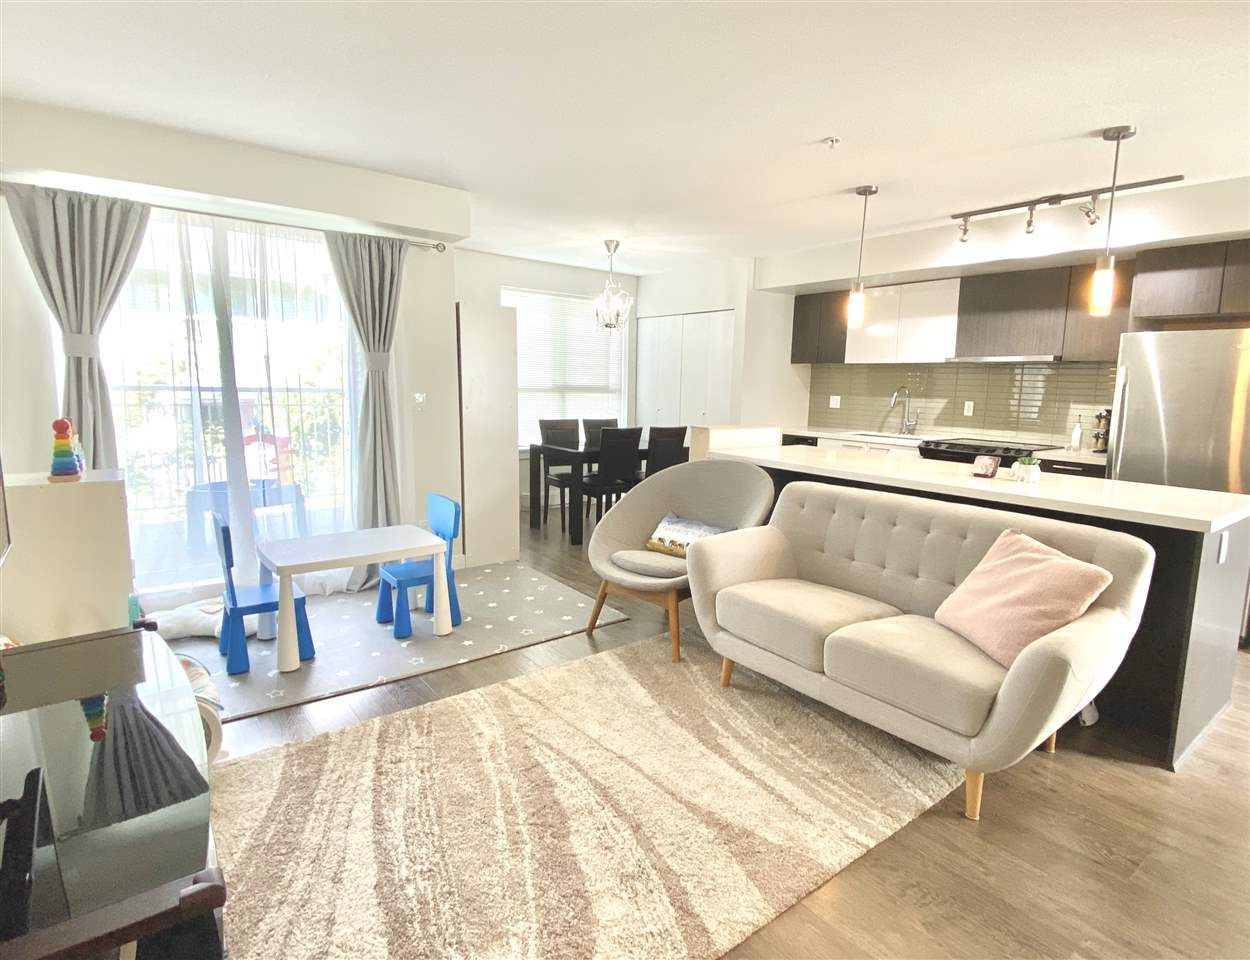 """Main Photo: 405 618 LANGSIDE Avenue in Coquitlam: Coquitlam West Townhouse for sale in """"BLOOM"""" : MLS®# R2490970"""